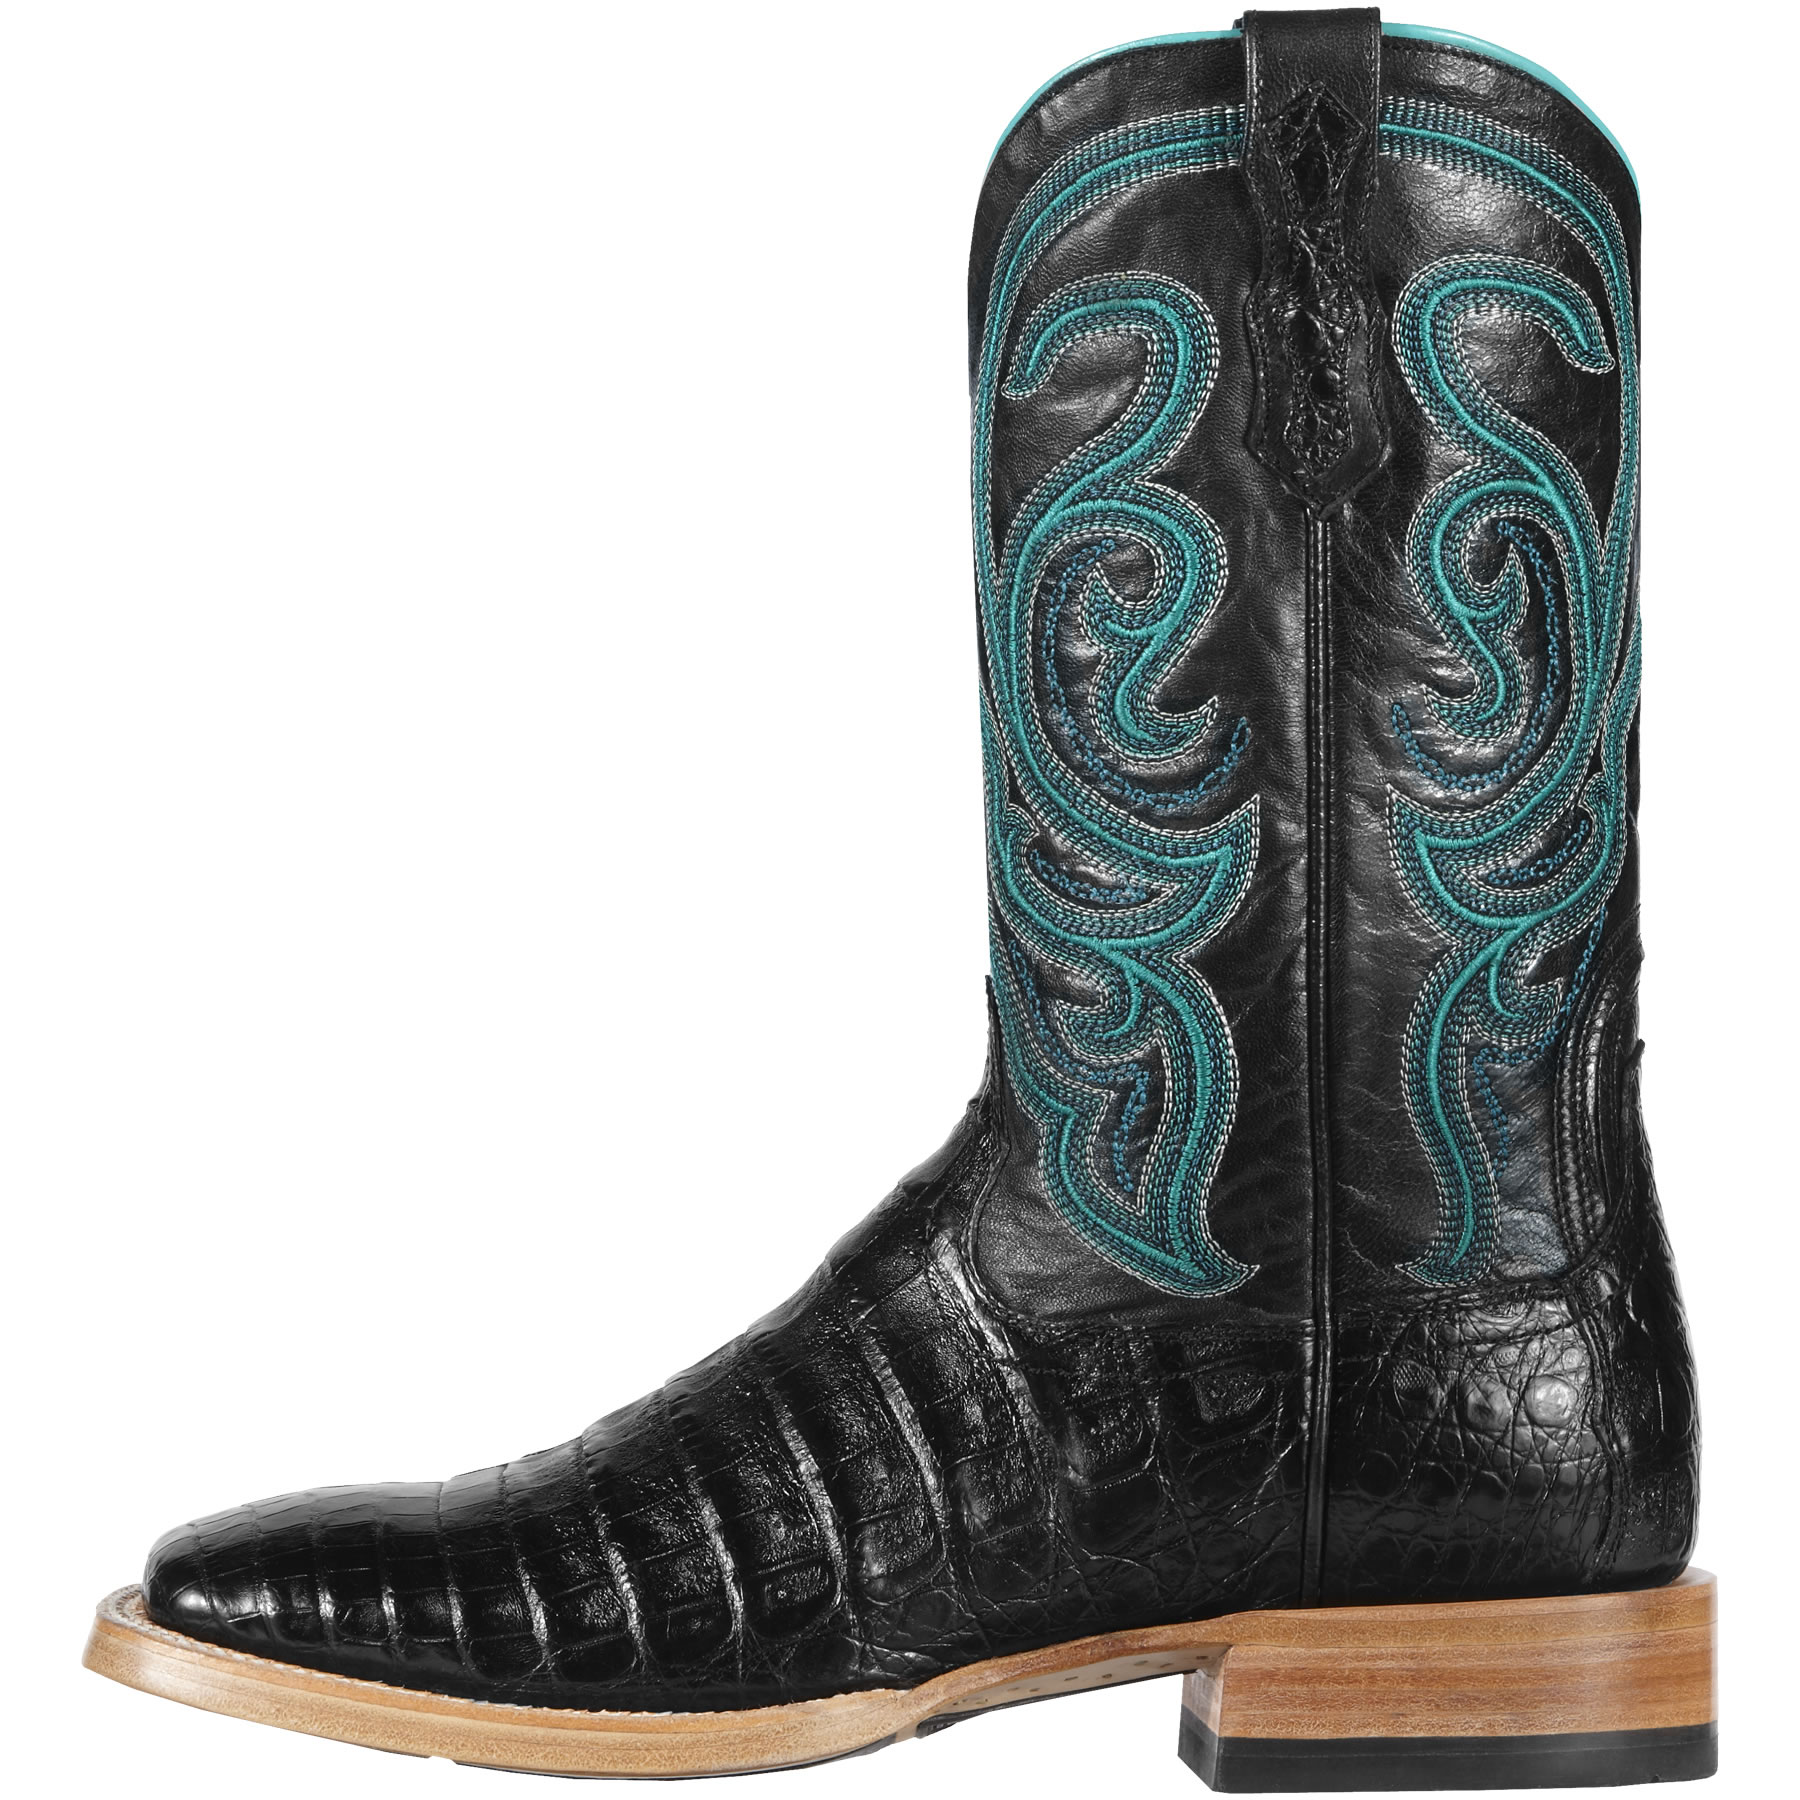 Complete boot corral, foreign exchange and ariat